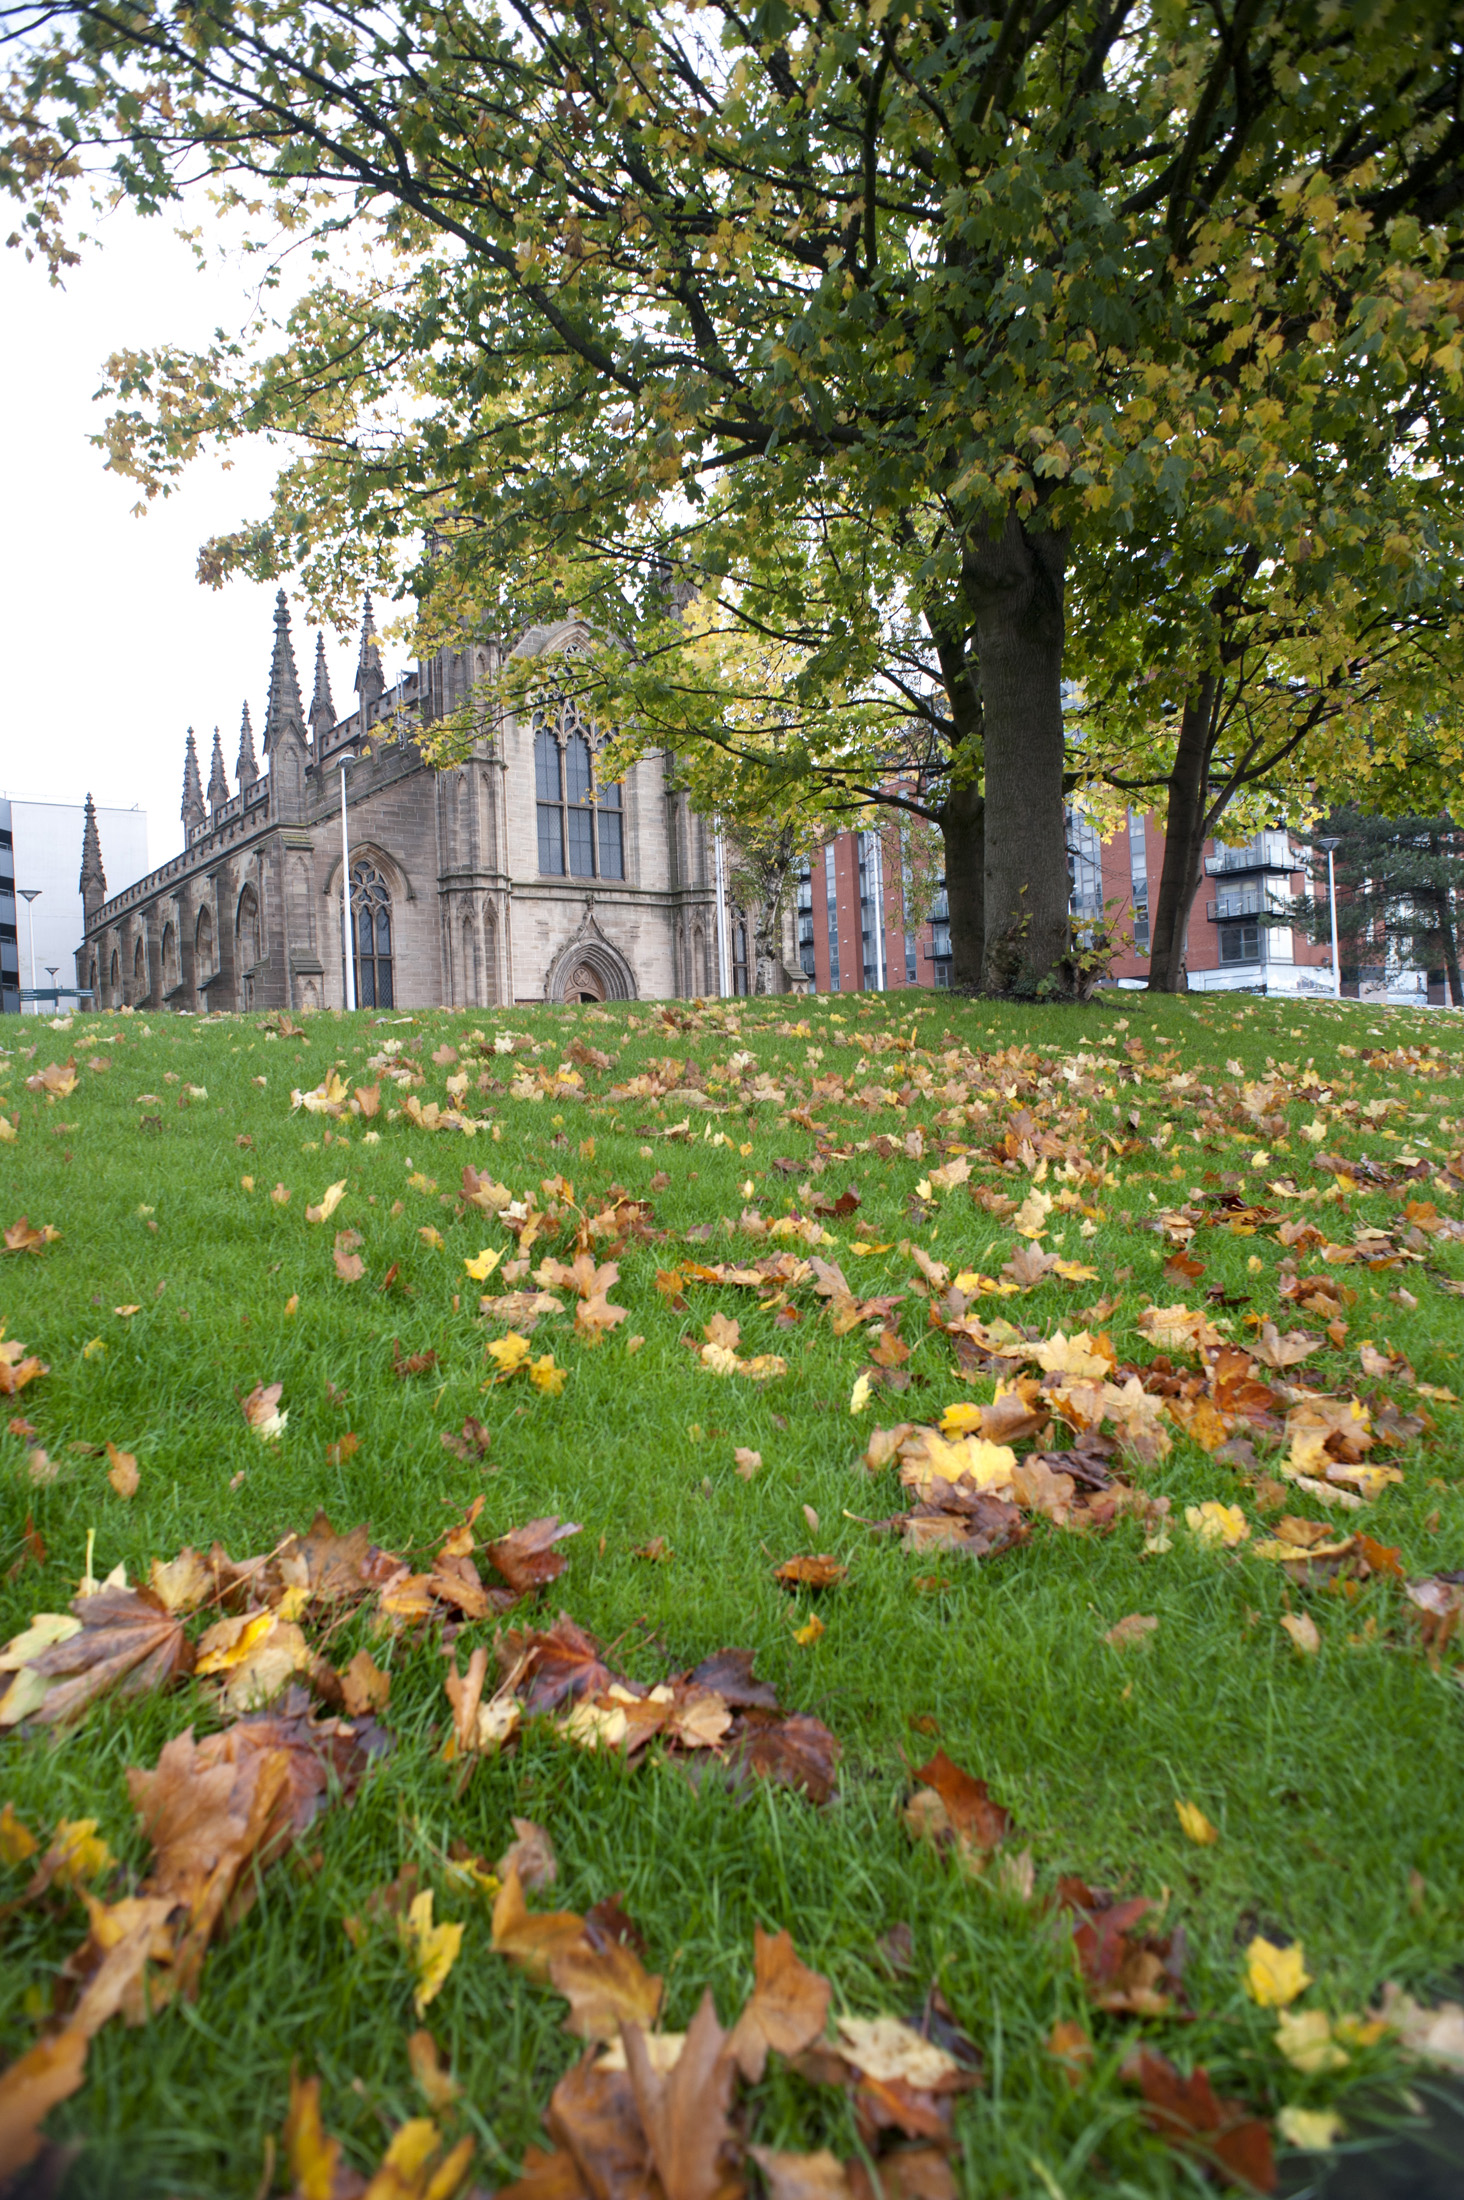 St Andrews Cathedral in Glasgow viewed over lush green grass strewn with fallen autumn leaves